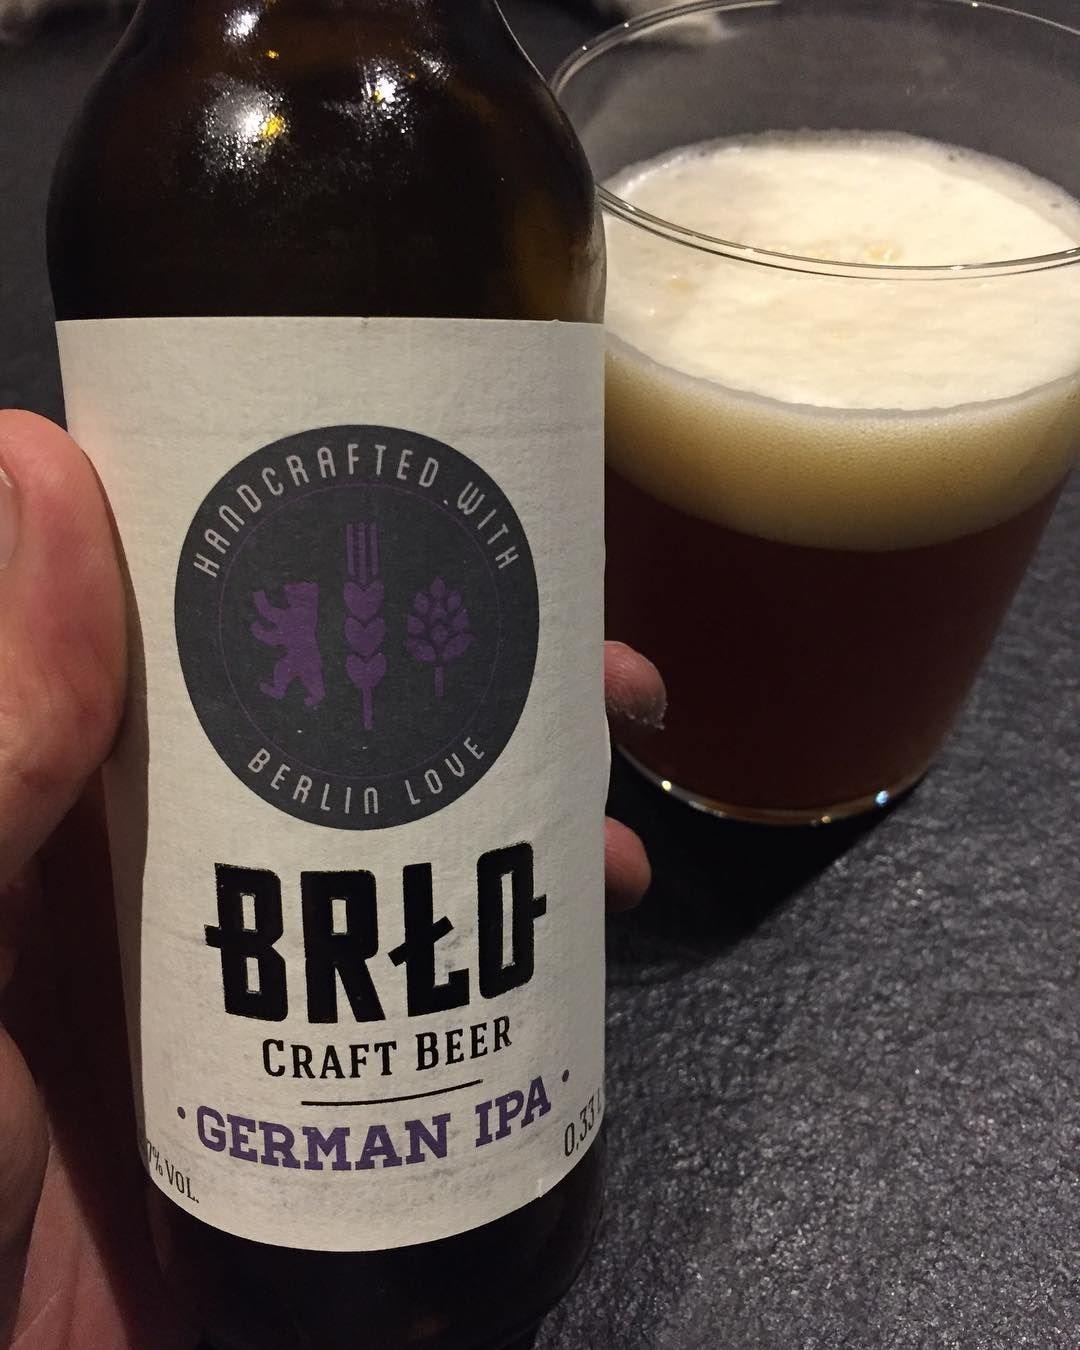 today a #brlobeer  a #german #ipa from #berlin . Not bad! #craftbeer #beer #germany #microbrewery #microbrewing #microbrew